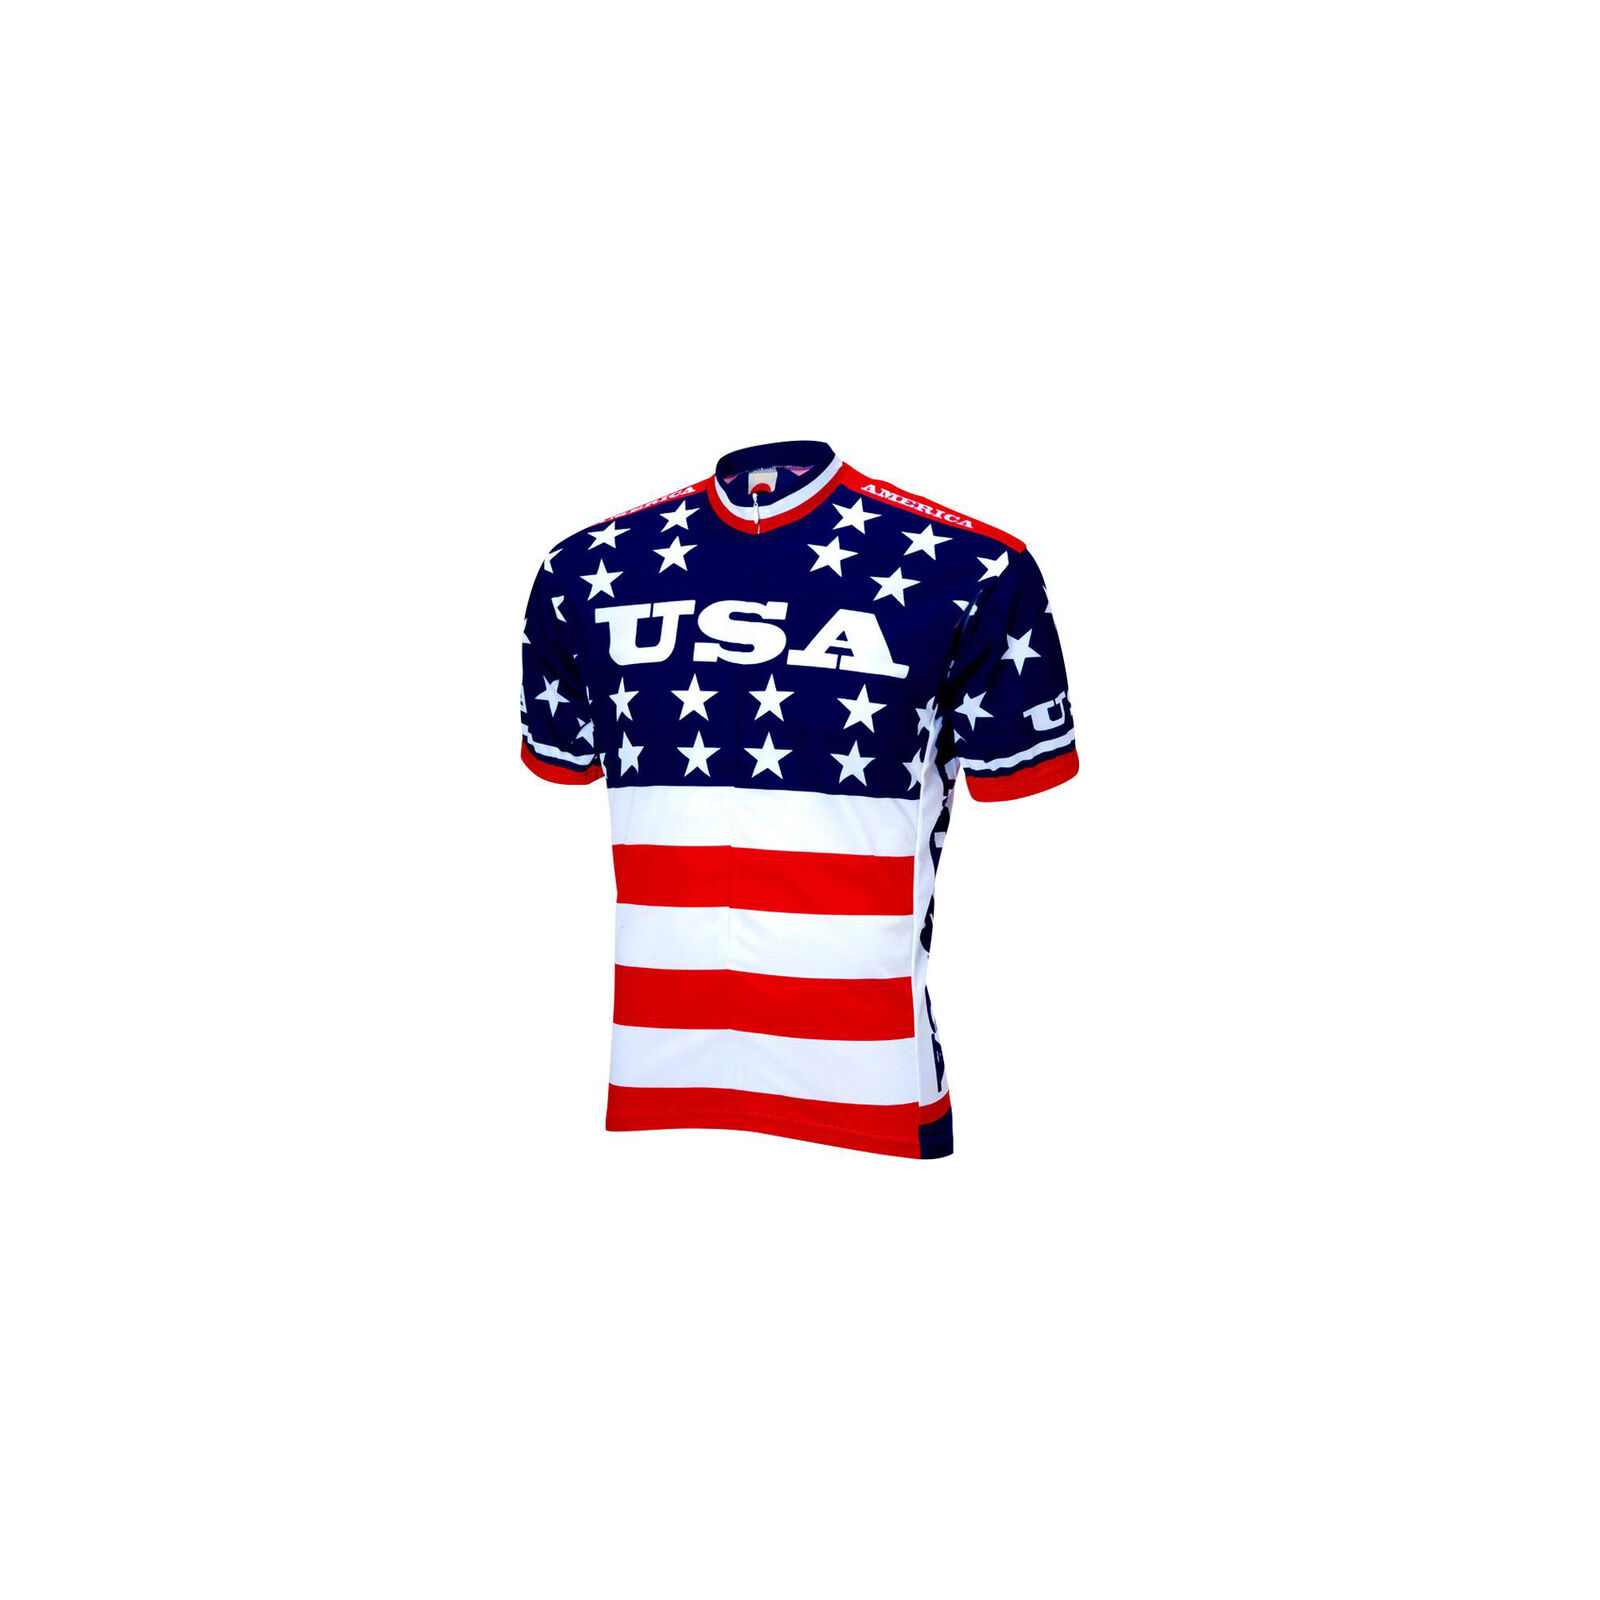 World Jerseys Team USA 1979 Retro  Cycling Men's Jersey  Red White bluee, LG  ultra-low prices